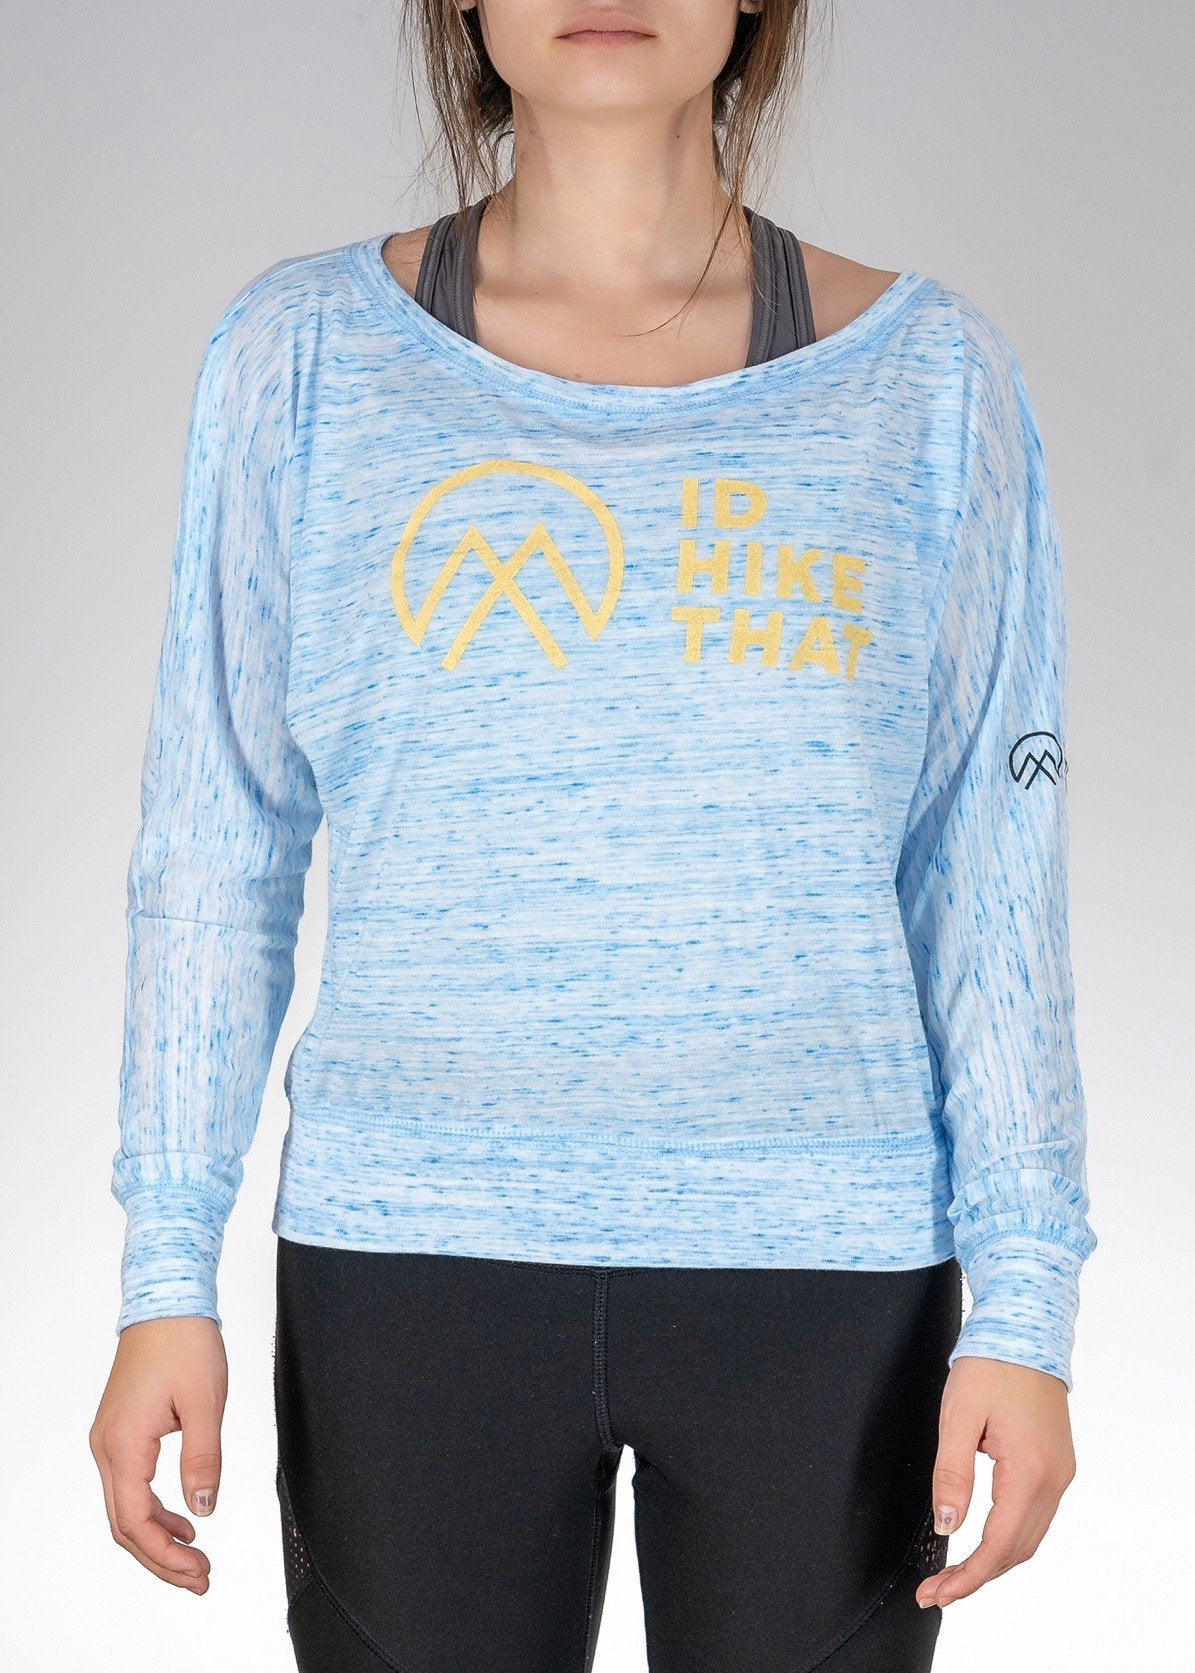 Apparel .I'd Hike That Logo! Flowy L/S Off Shoulder Tee - Blue Marble